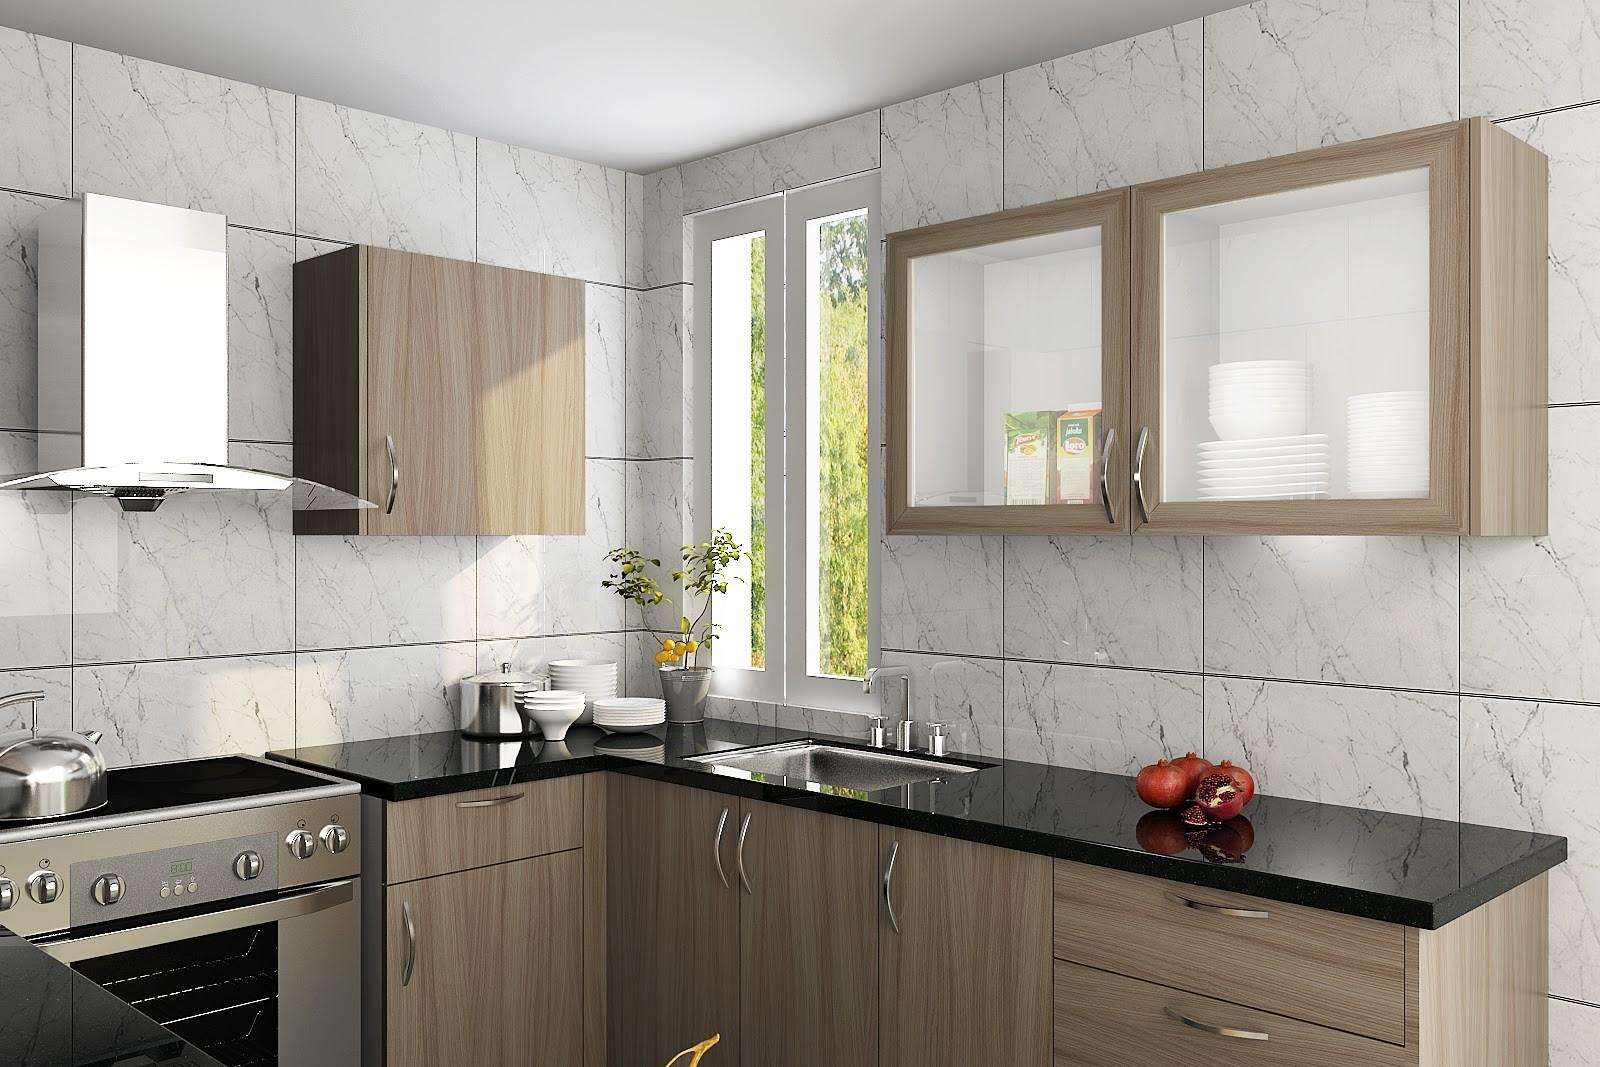 Wood Grain Kitchen Cabinets African Families